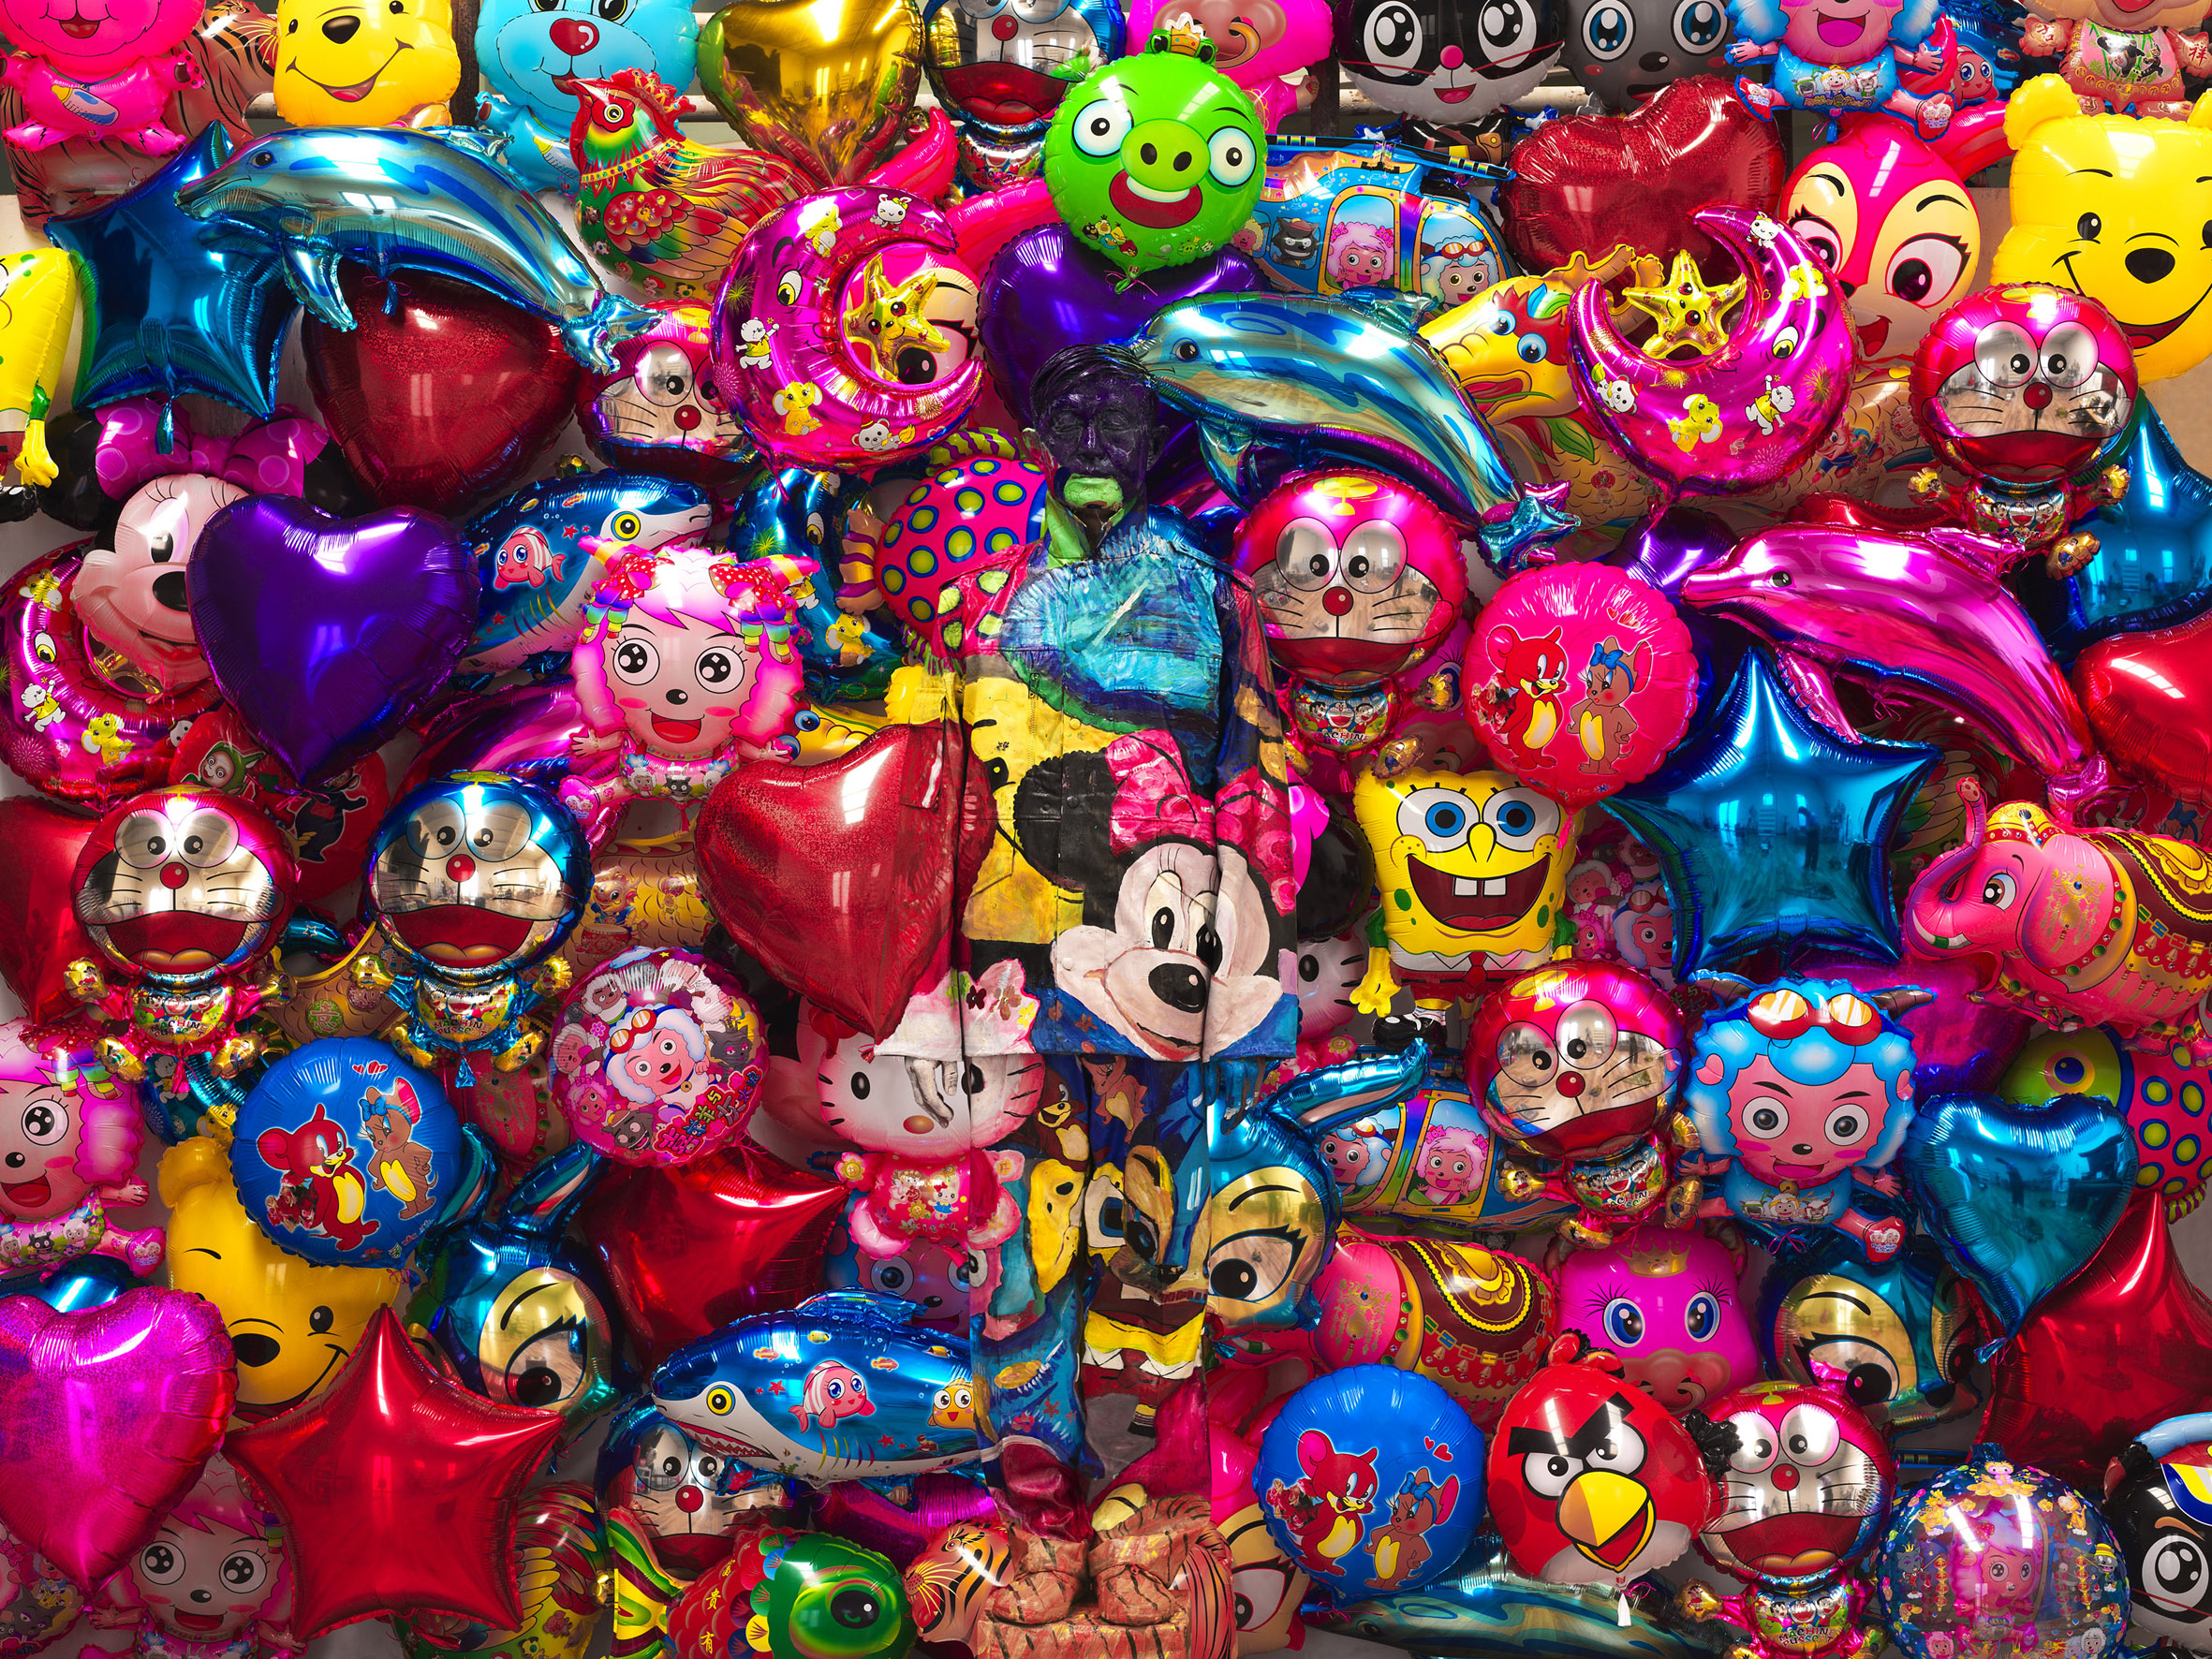 Liu Bolin, Balloon, 2012